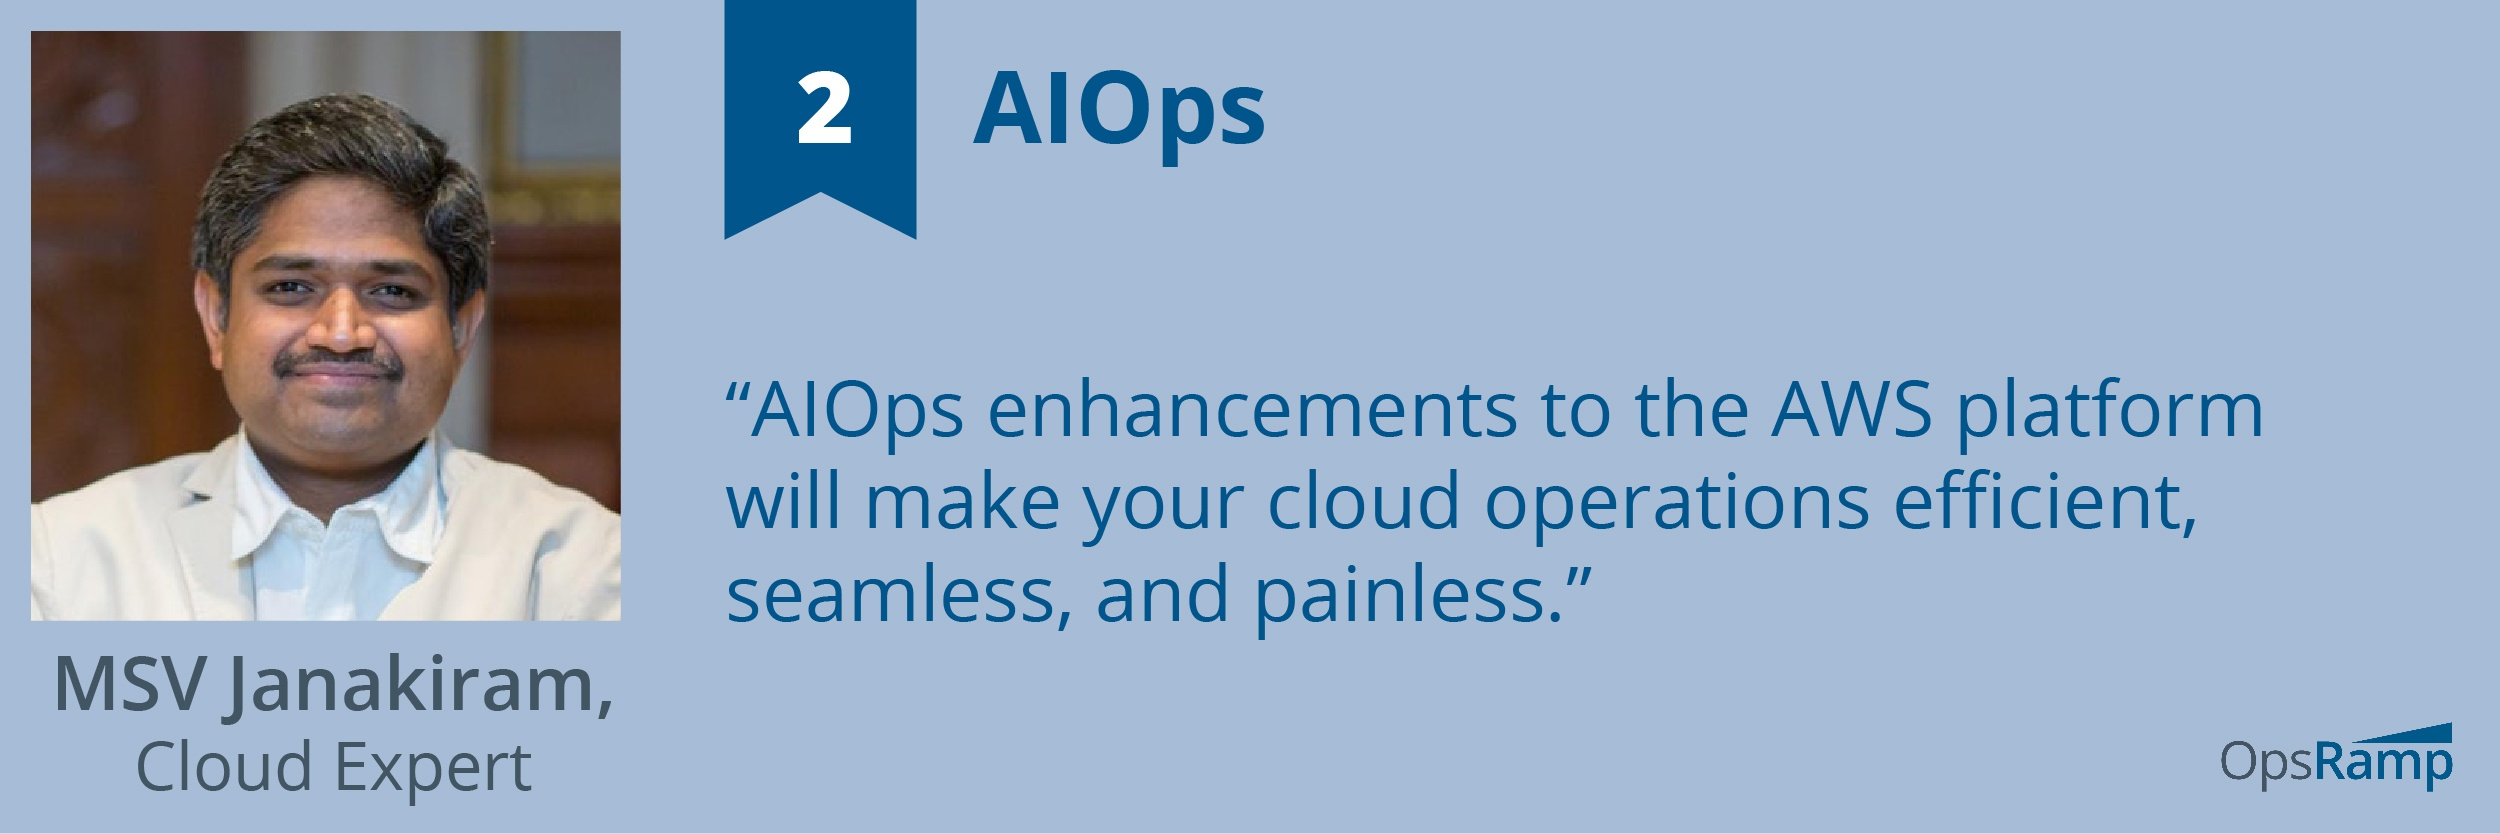 Meet The New CloudWatch With AIOps Capabilities